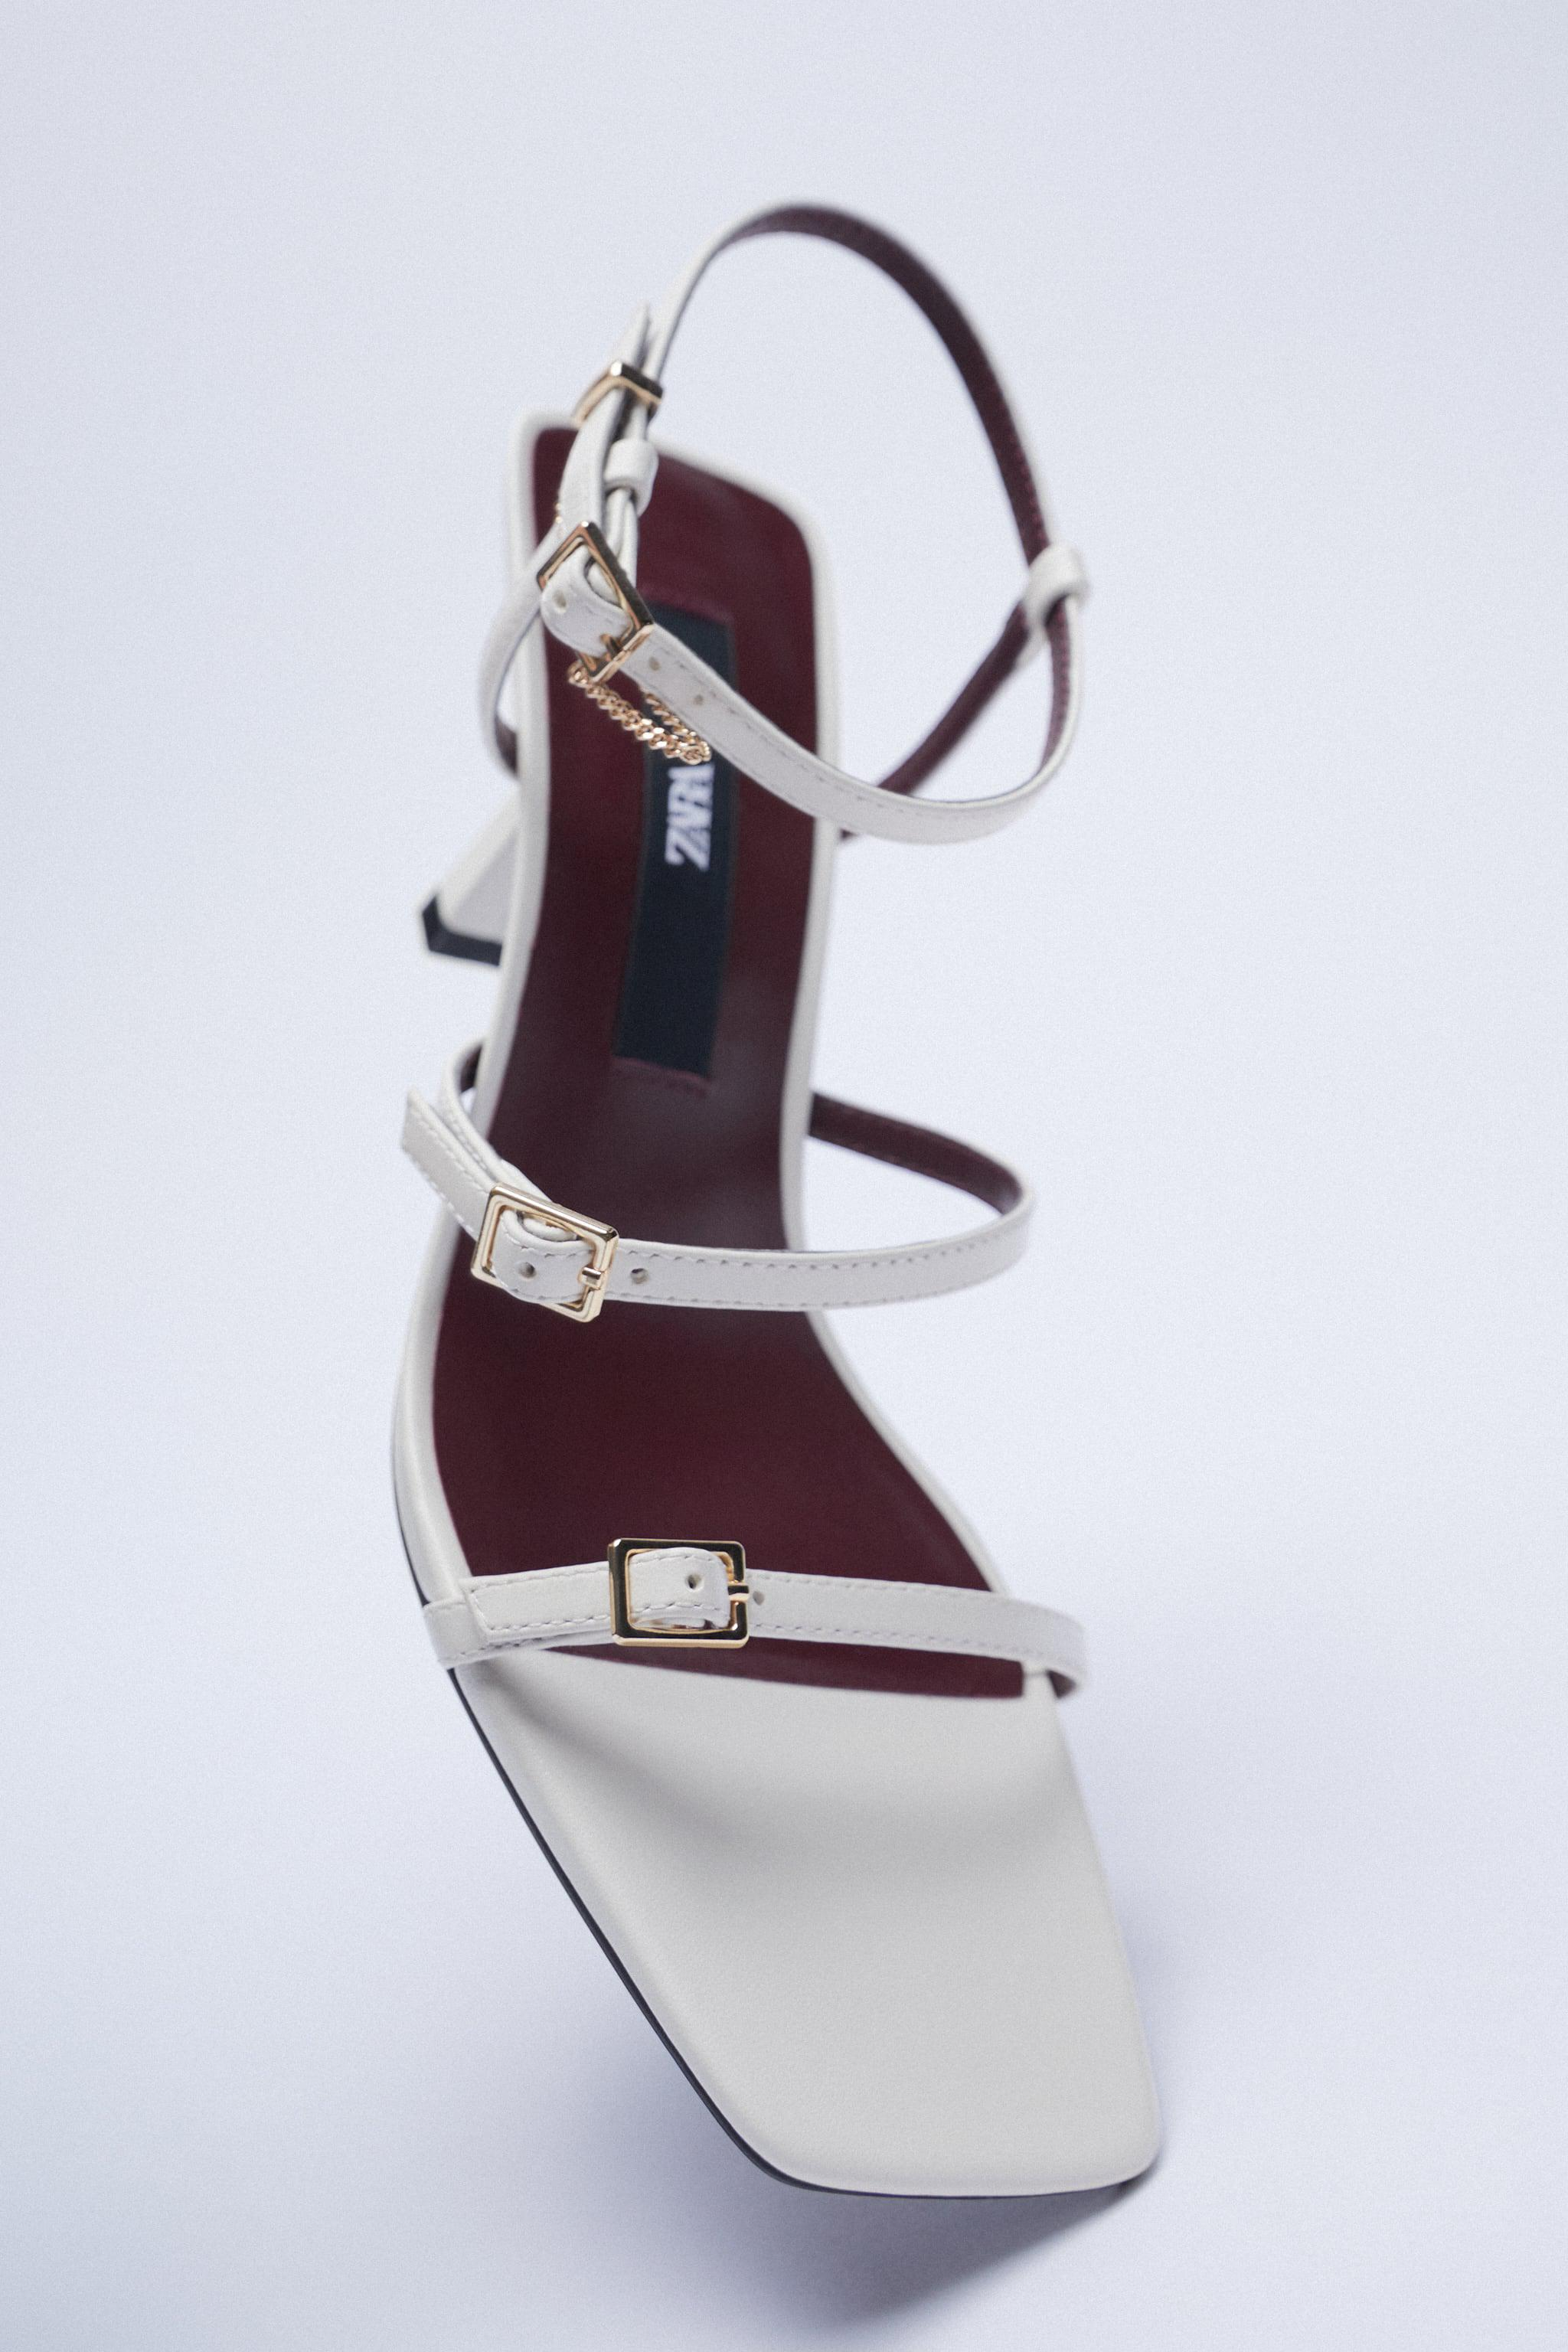 LEATHER HIGH HEEL STRAPPY SANDALS WITH BUCKLES 8